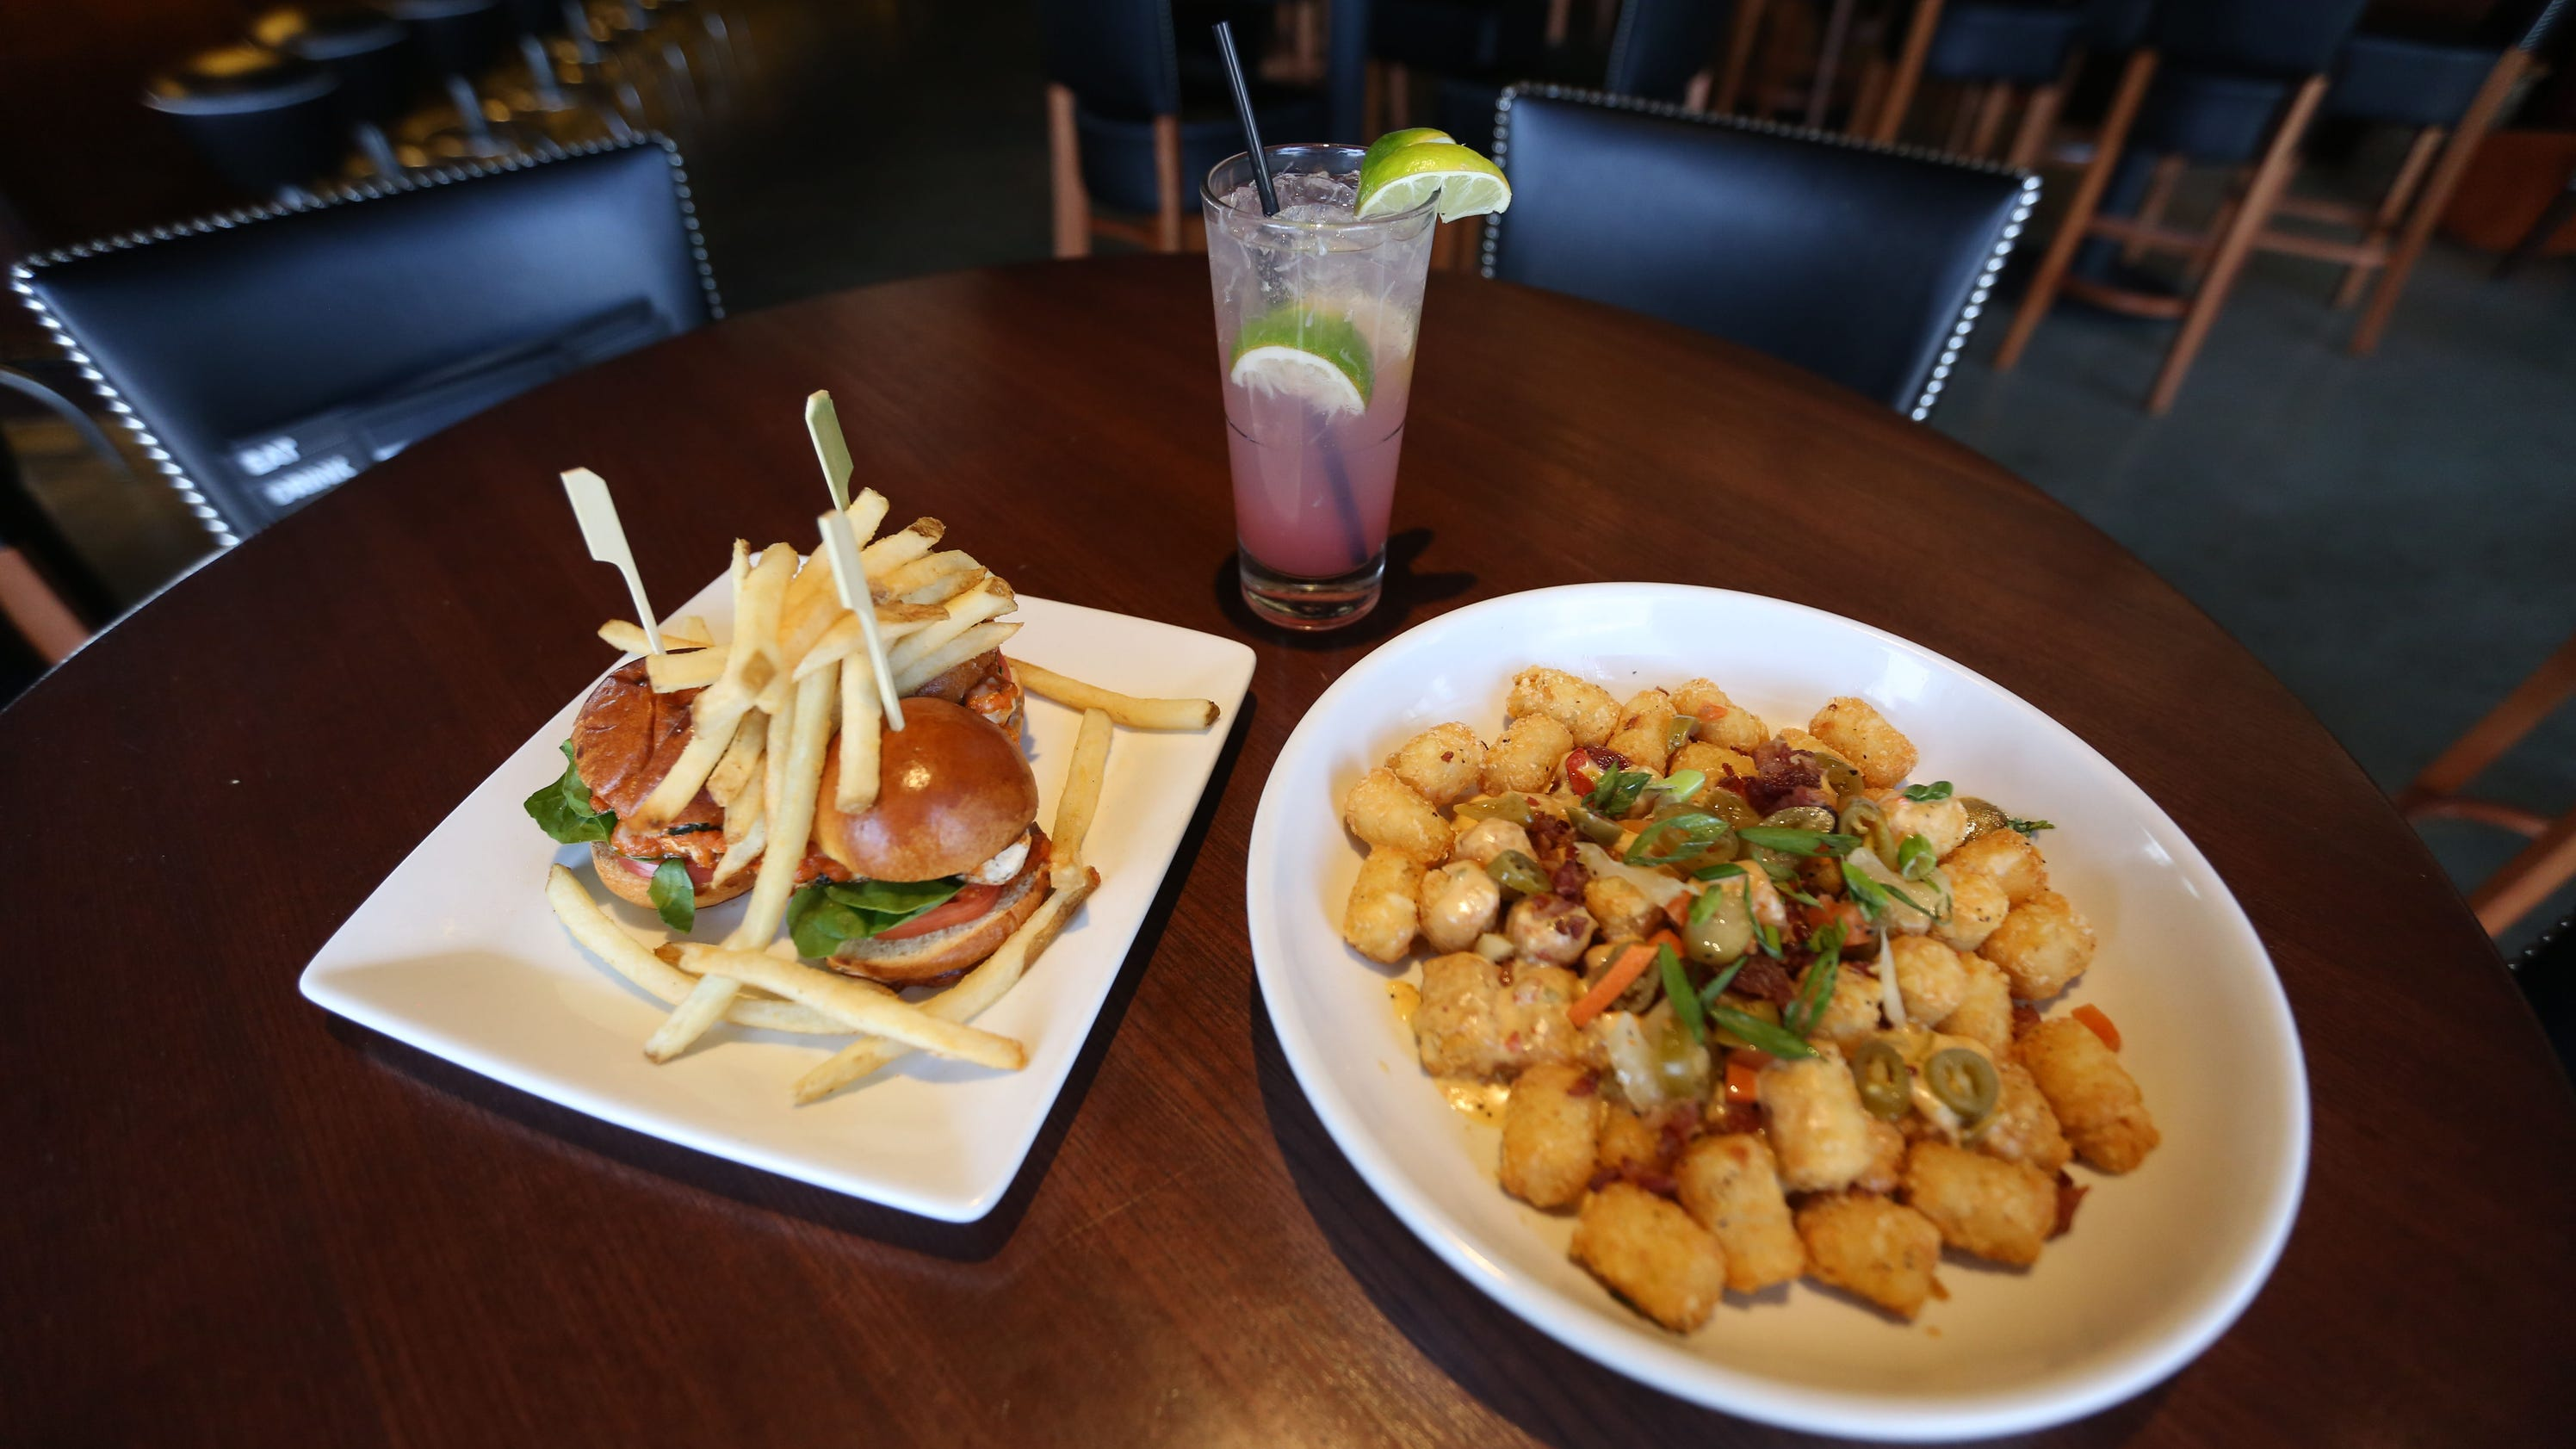 Datebook diner bar louie 39 s food is decadent and darn good for Food at bar 38